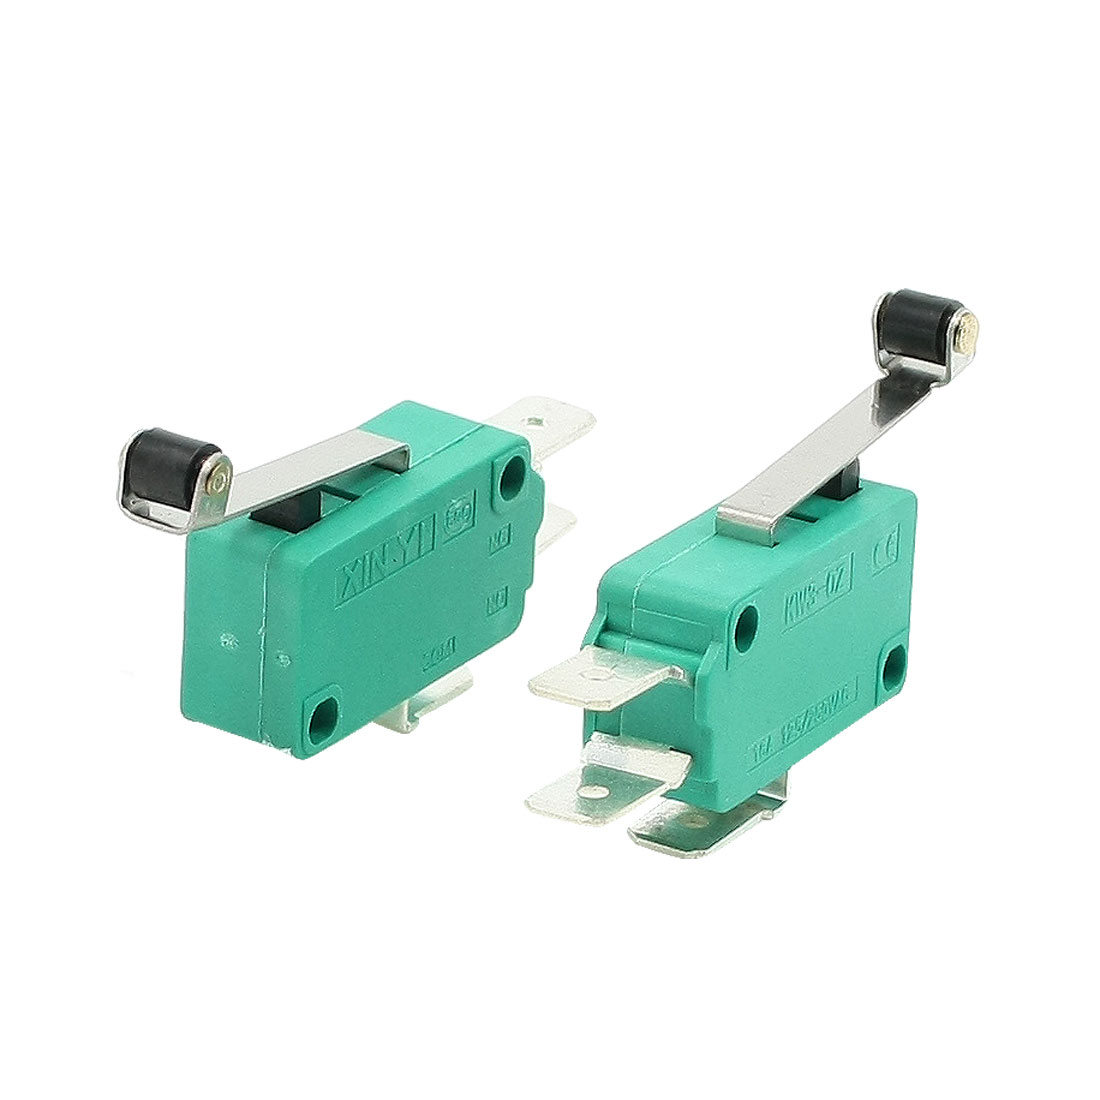 2 Pcs AC 250V 16A SPDT 3 Terminals Long Hinge Roller Lever Limit Micro Switch Green